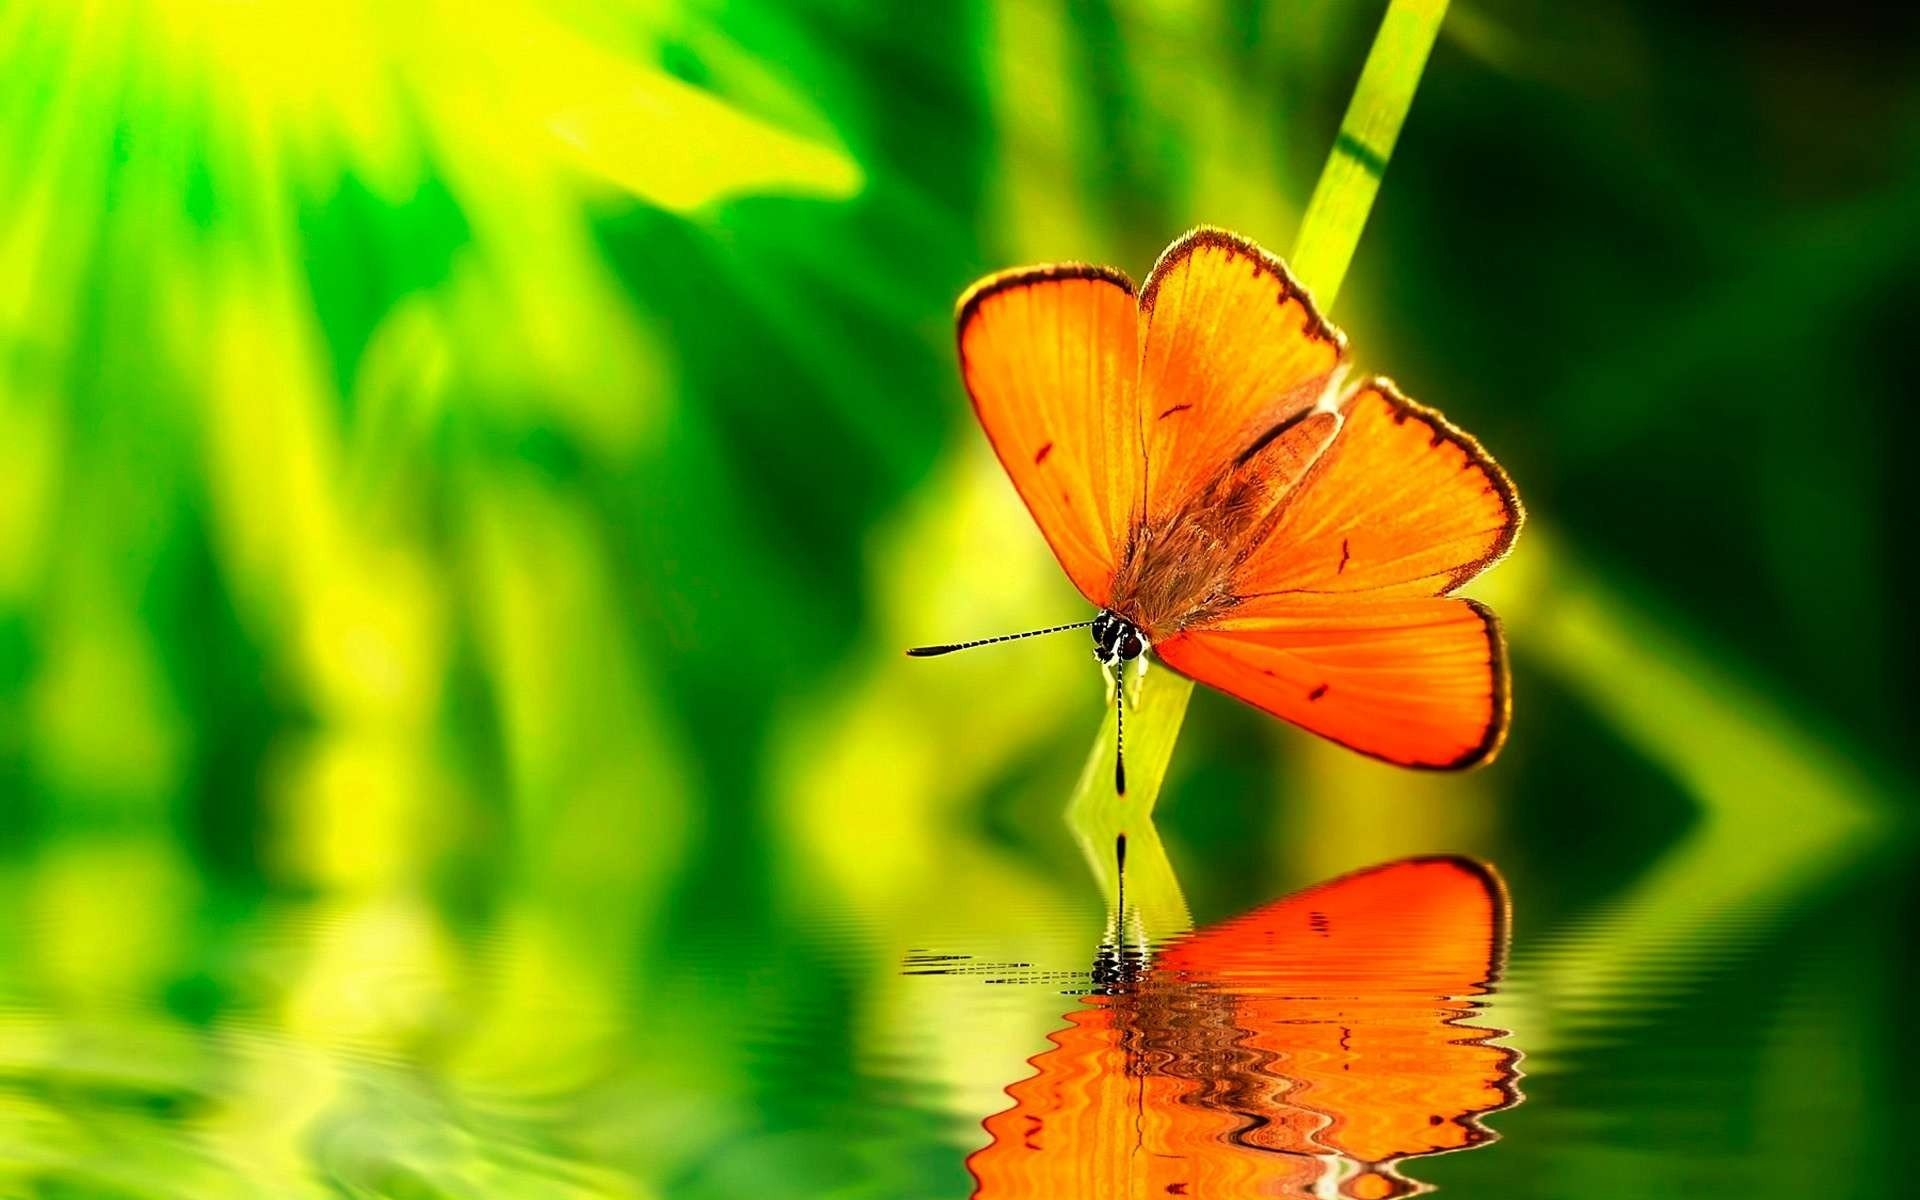 Green water nature orange insects wildlife reflections blurred background  butterflies wallpaper | | 294097 | WallpaperUP